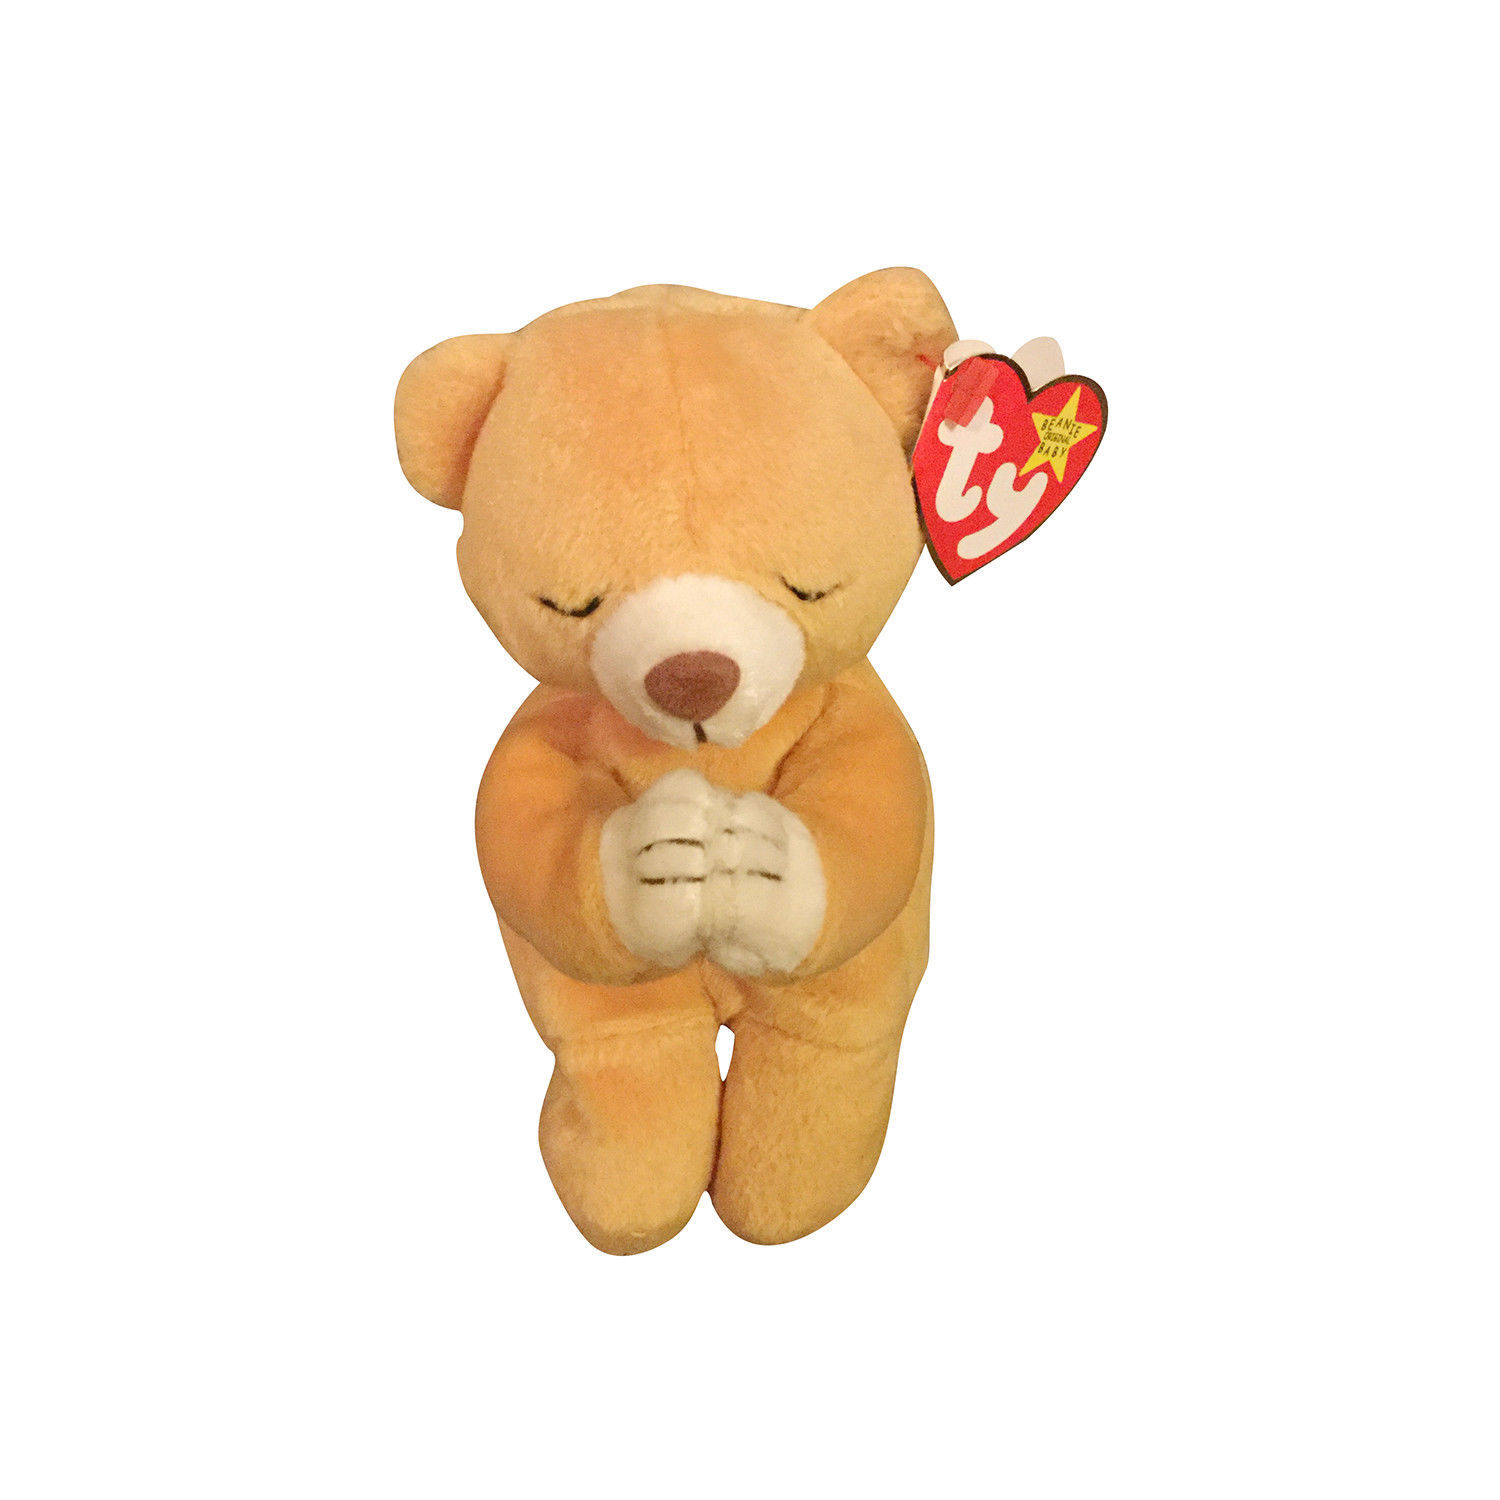 S l1600. S l1600. Retired TY Beanie Babies stuffed toy - Hope the Praying  Bear w  tag errors MWMT. Retired ... 39133539d68c